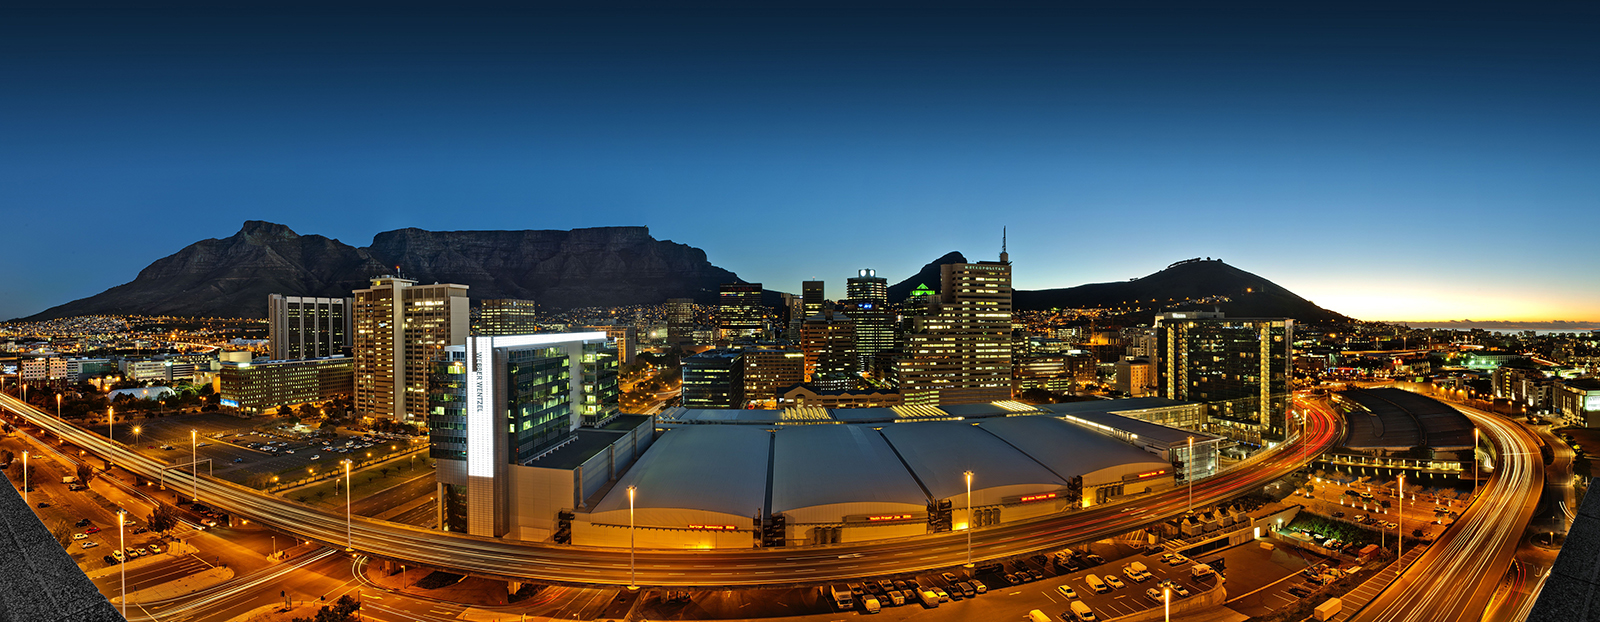 ICHRM 2018 : 20th International Conference on Economics and Human Resource Management Cape Town, South Africa November 15 - 16, 2018